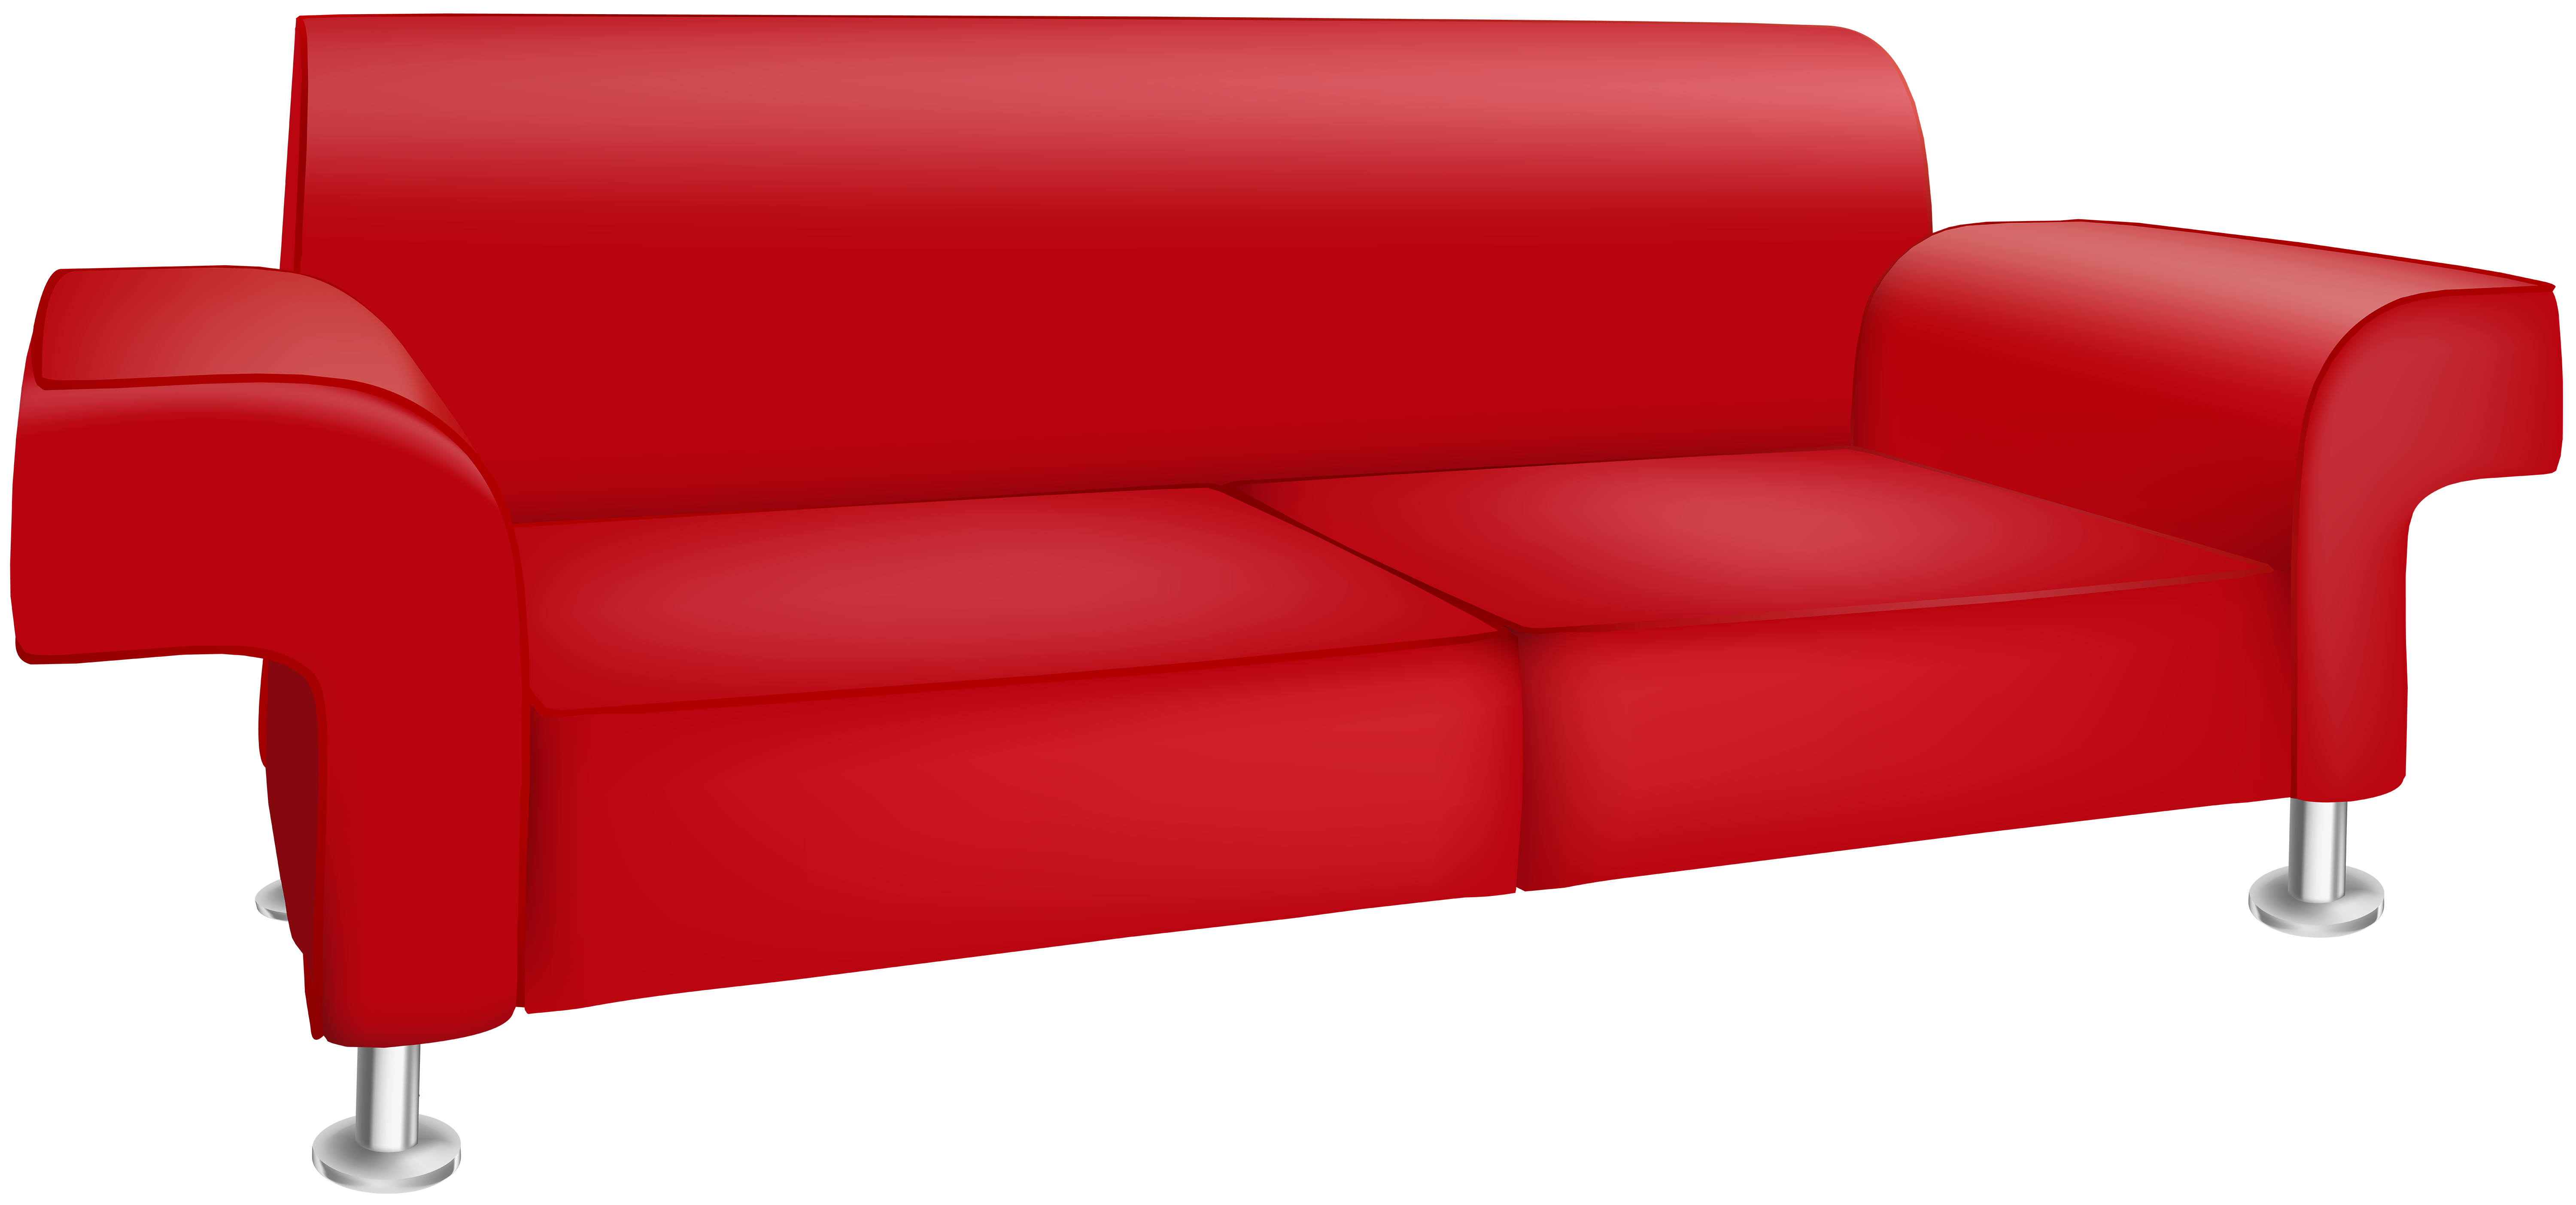 Sofa bed Table Couch Chair Clip art.